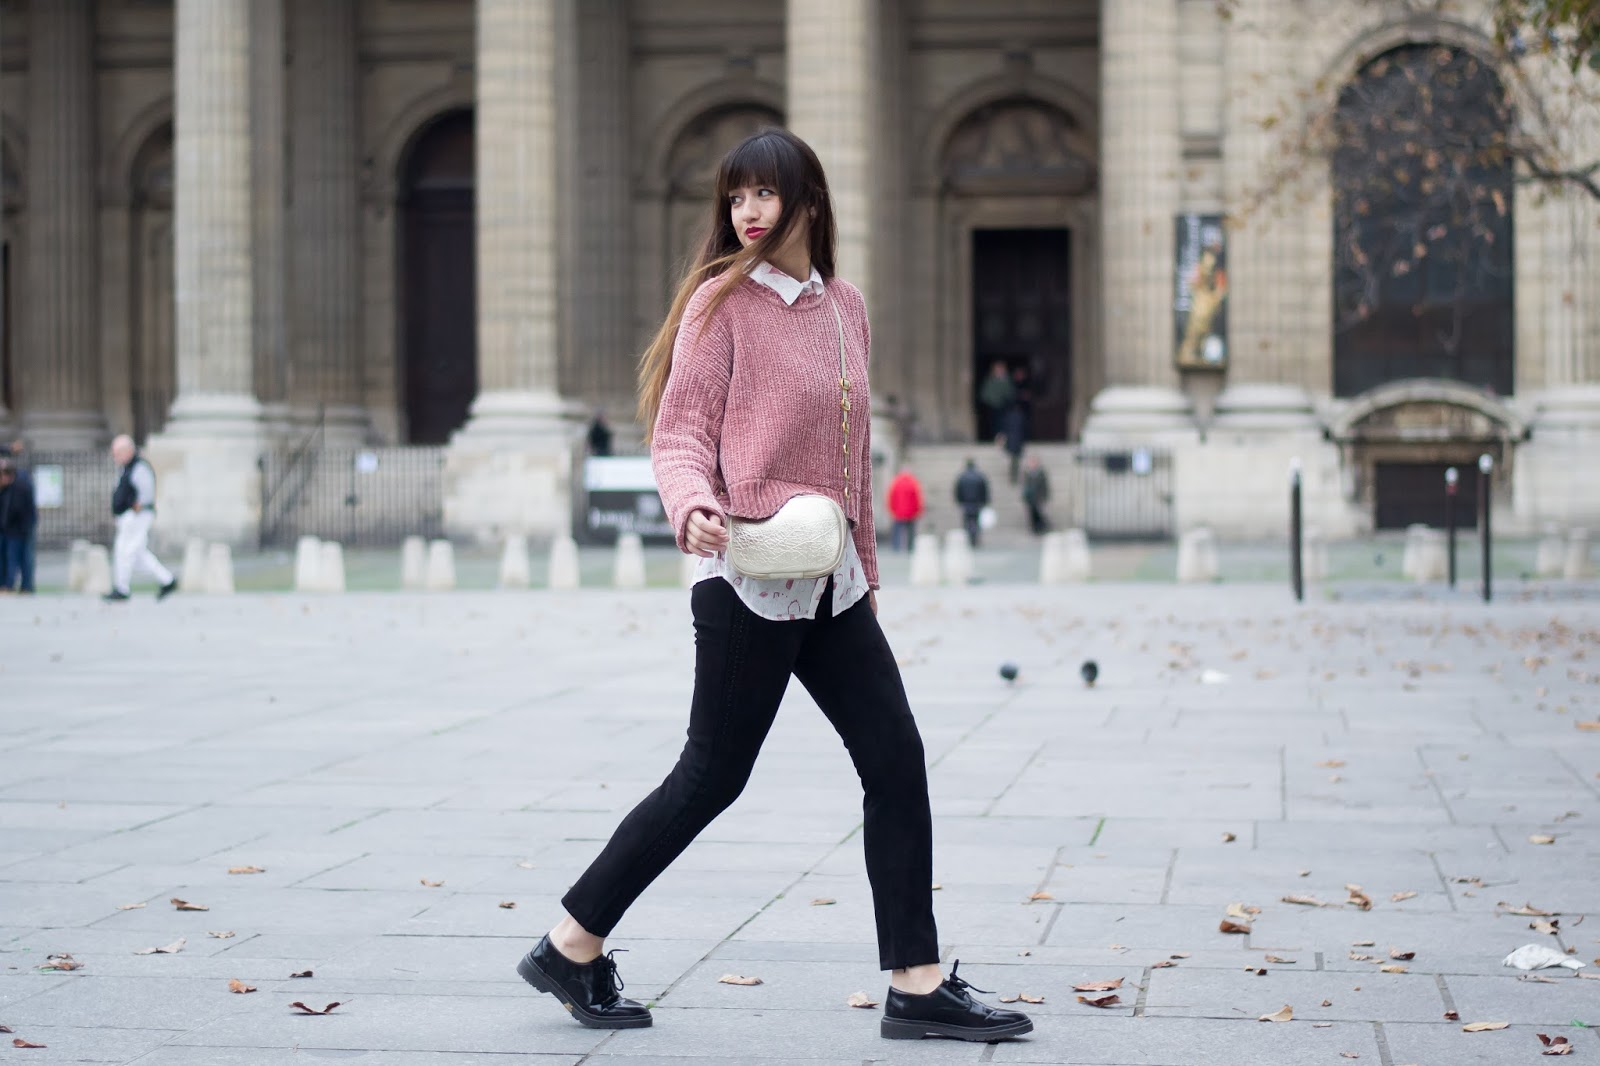 meetmeinparee, blogger, fashion, look, style, Parisian blogger, mode, street style